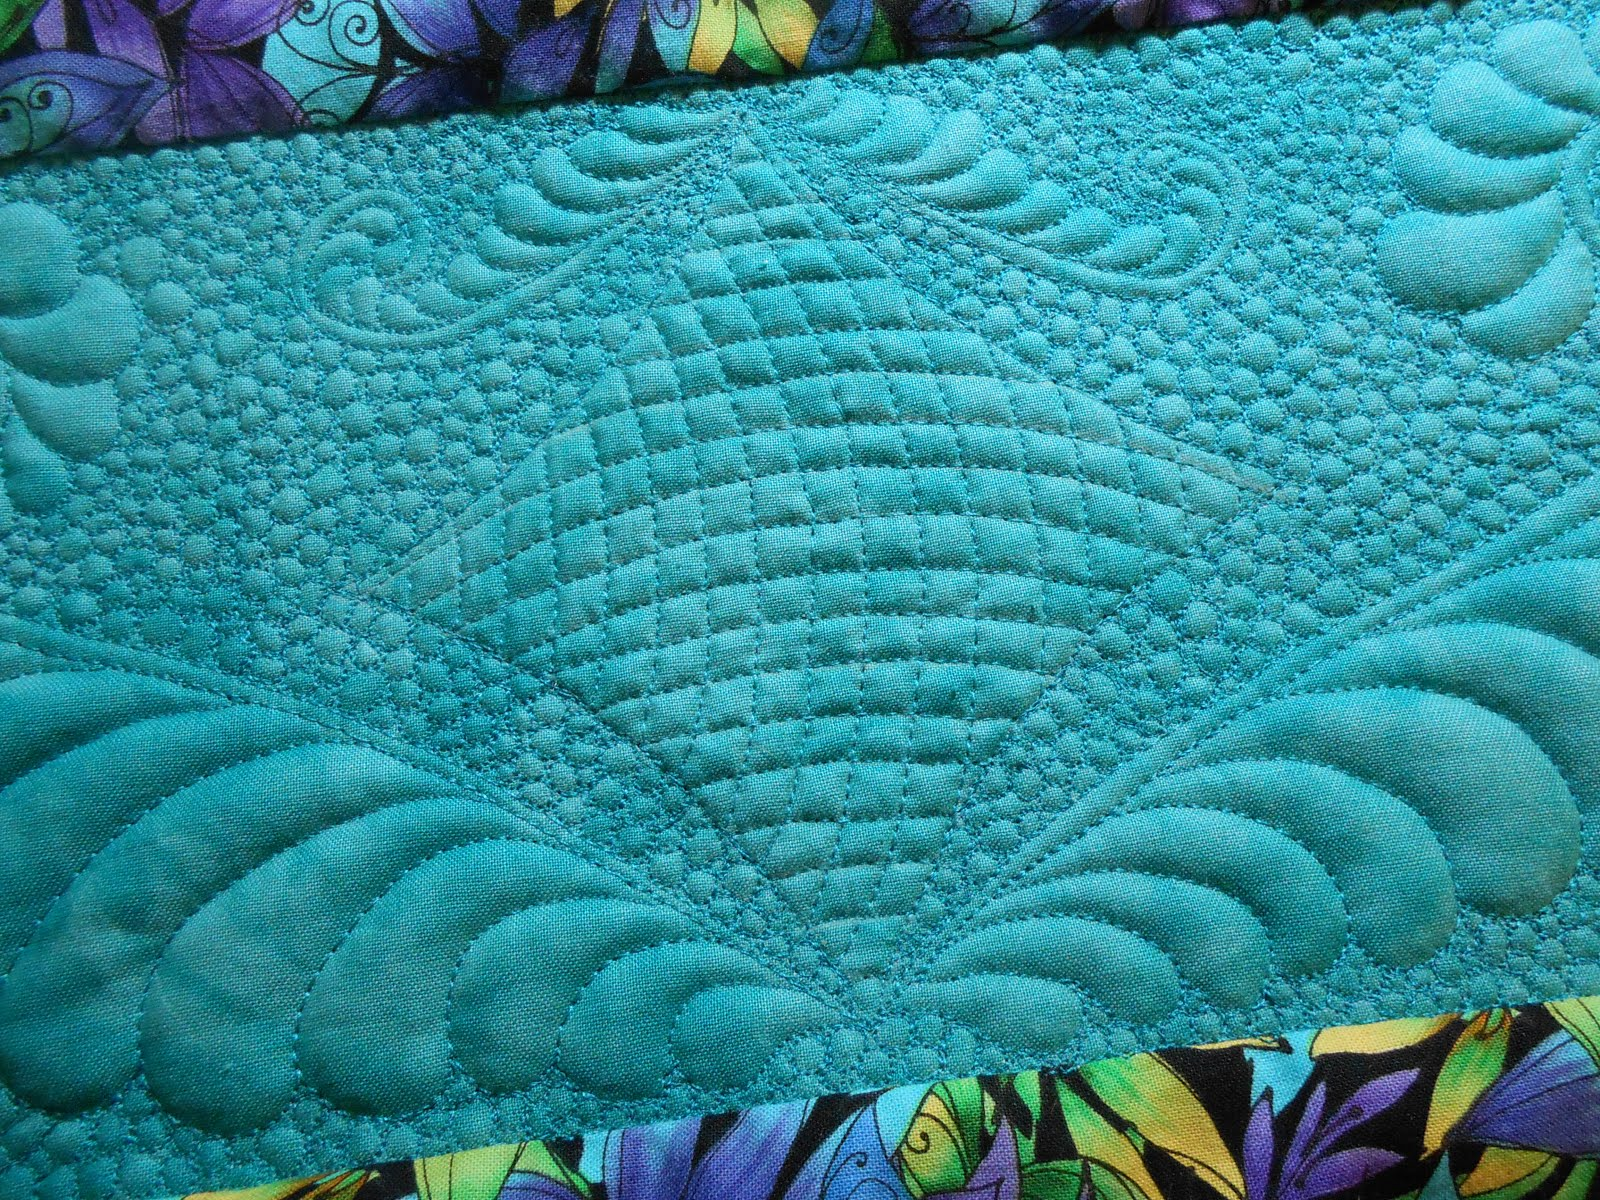 Pumpkin Patch Quilter: Creating Curved Crosshatch Quilting on a ... : crosshatch quilting - Adamdwight.com